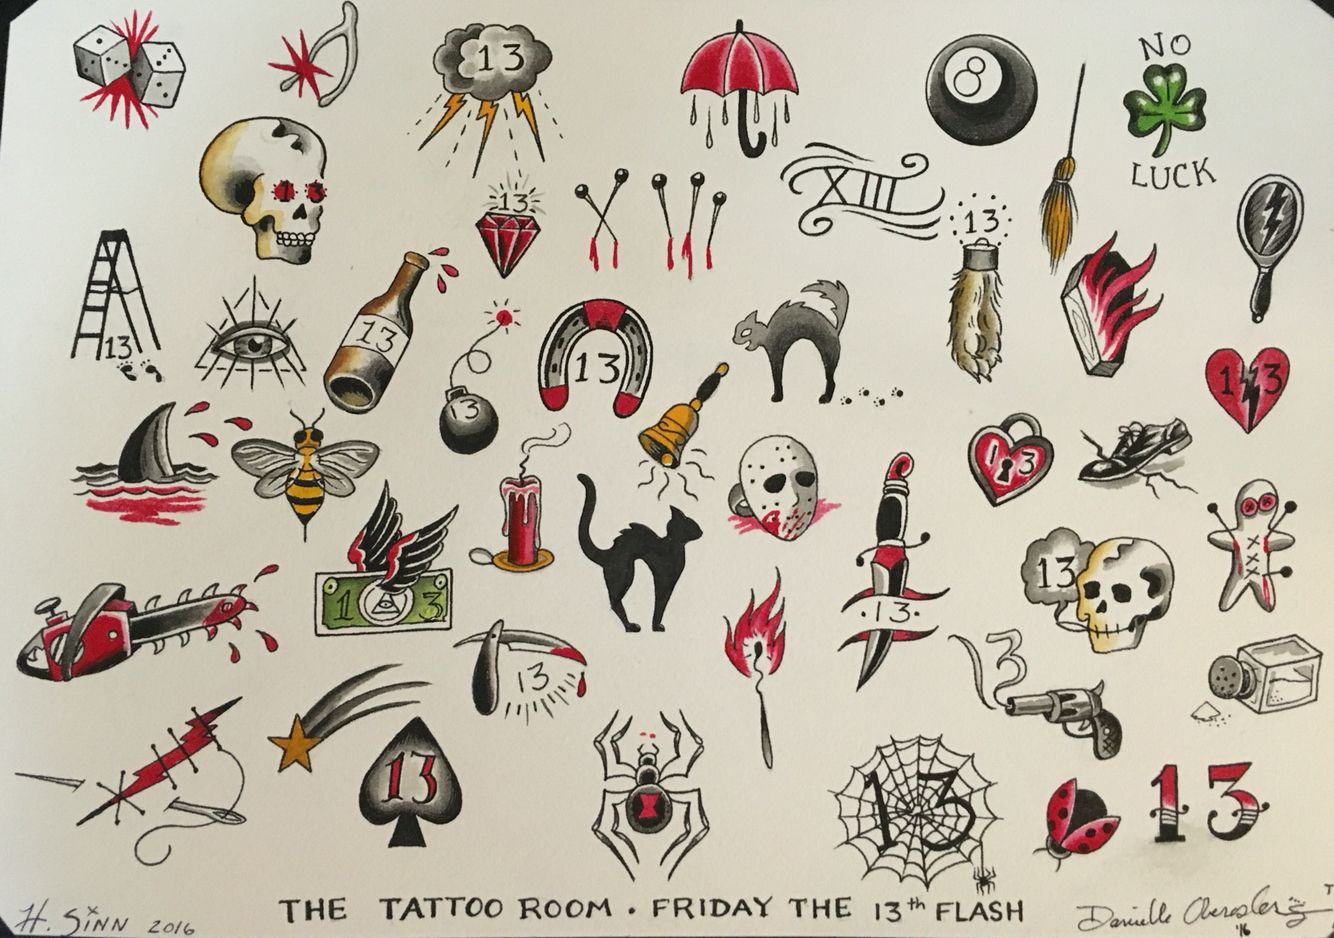 We are doing 31 tattoos this Friday May 13th 2016!! The